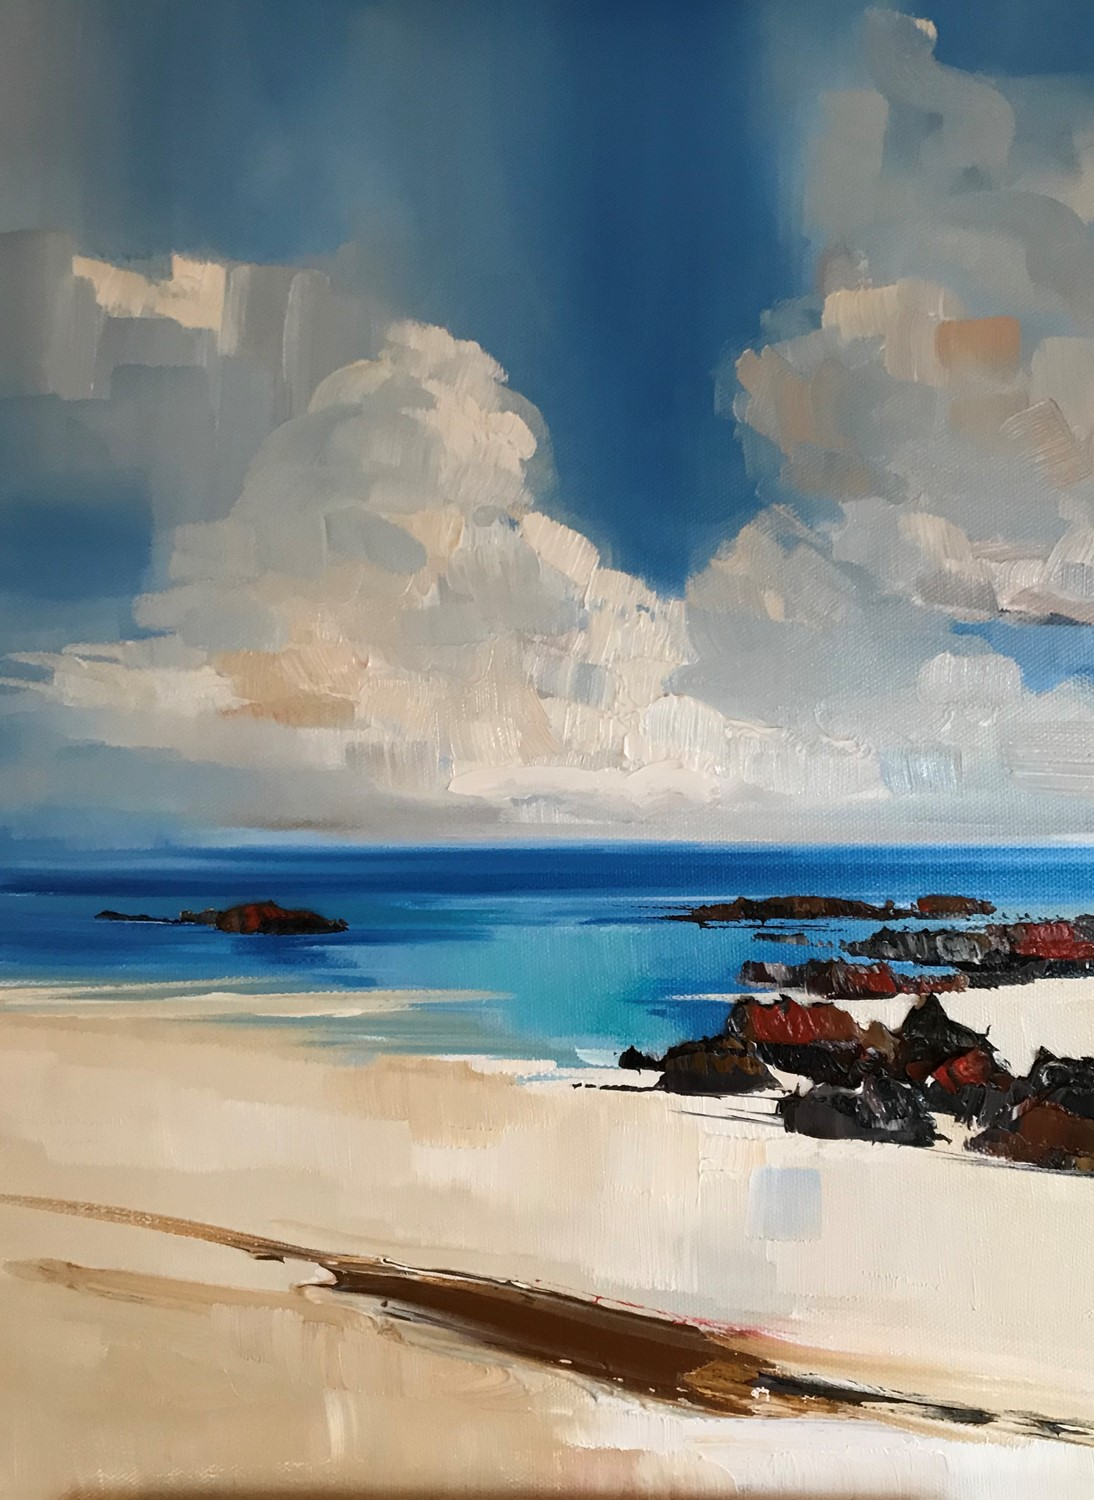 'Capturing the ever changing clouds' by artist Rosanne Barr